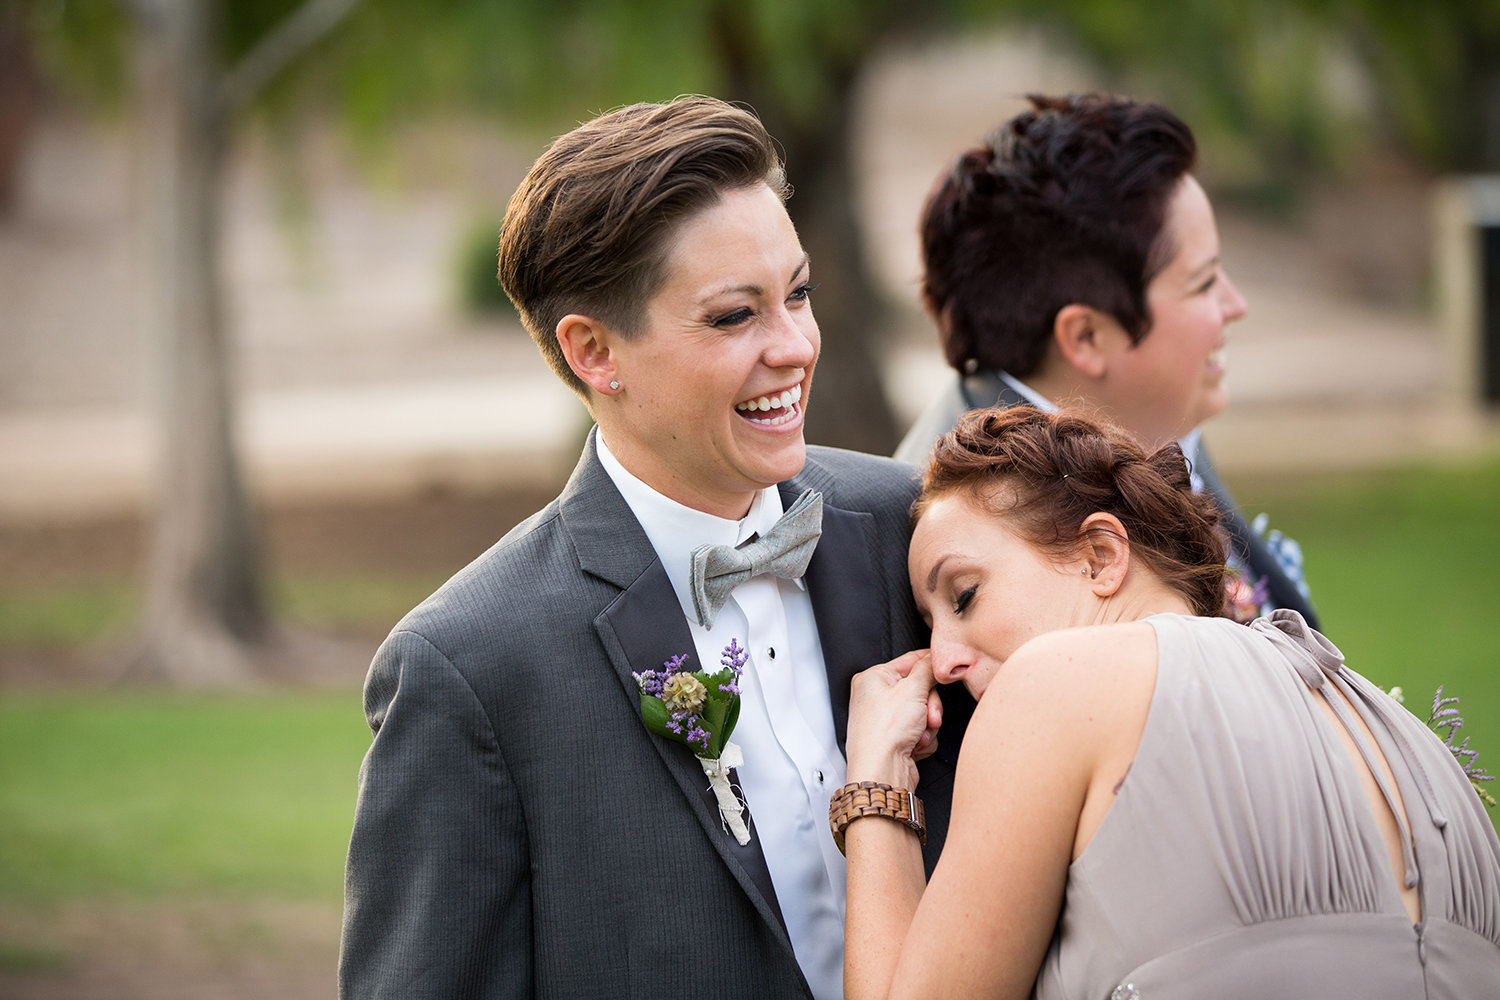 The emotions were high at this beautiful outdoor wedding | LGBT Wedding Ceremony